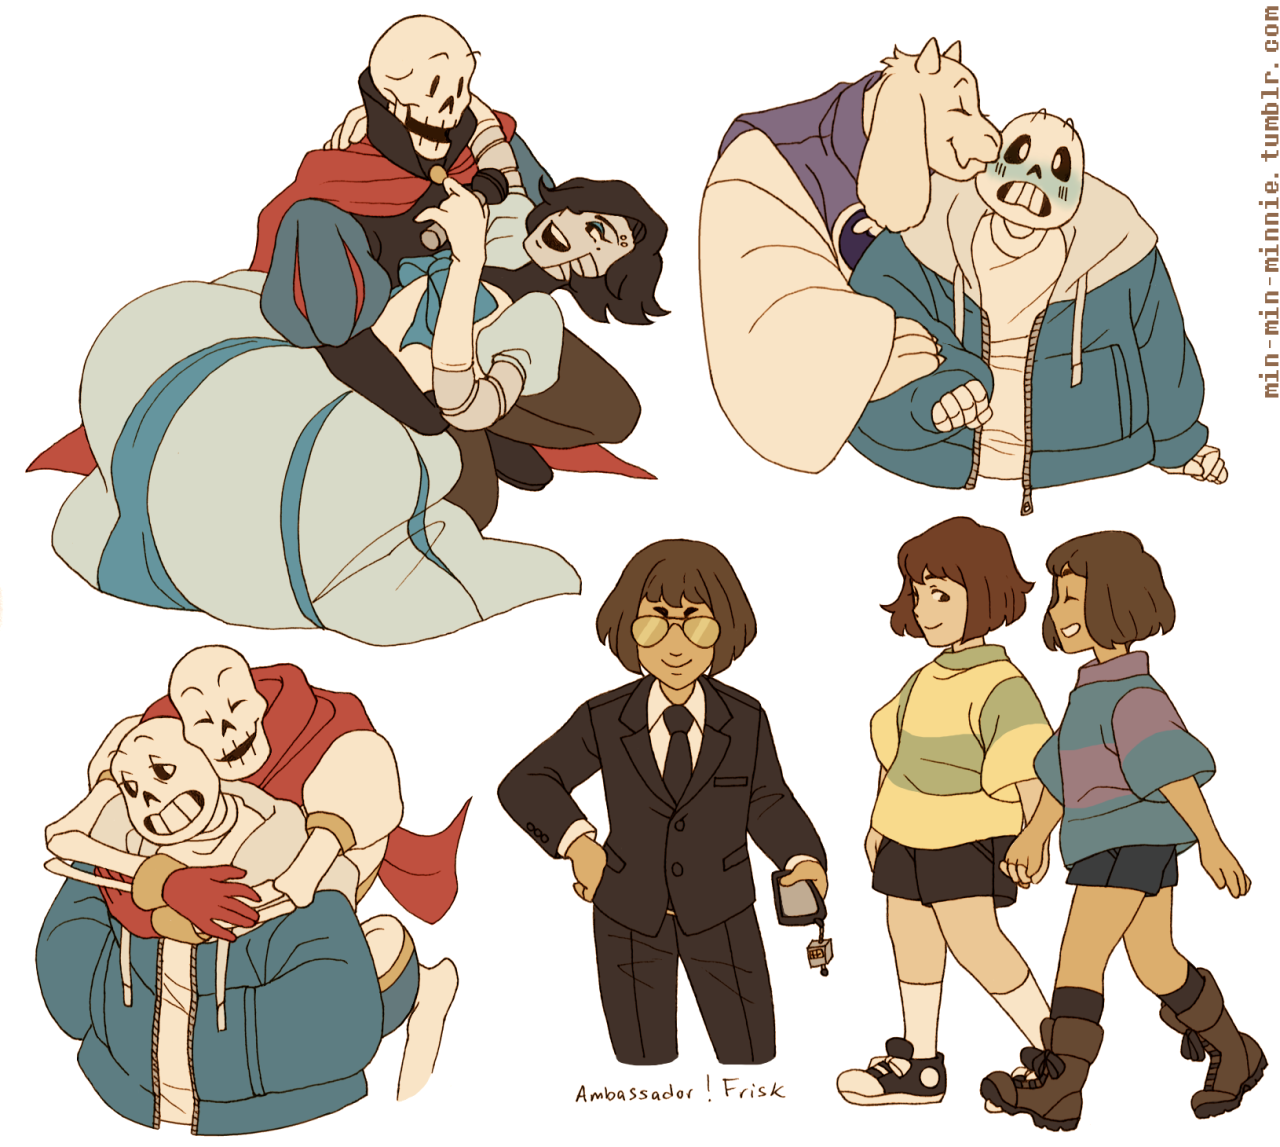 Papyrus, Mettaton, Toriel, Sans, Chara, and Frisk by min-min-minnie and it's so frigging cute!